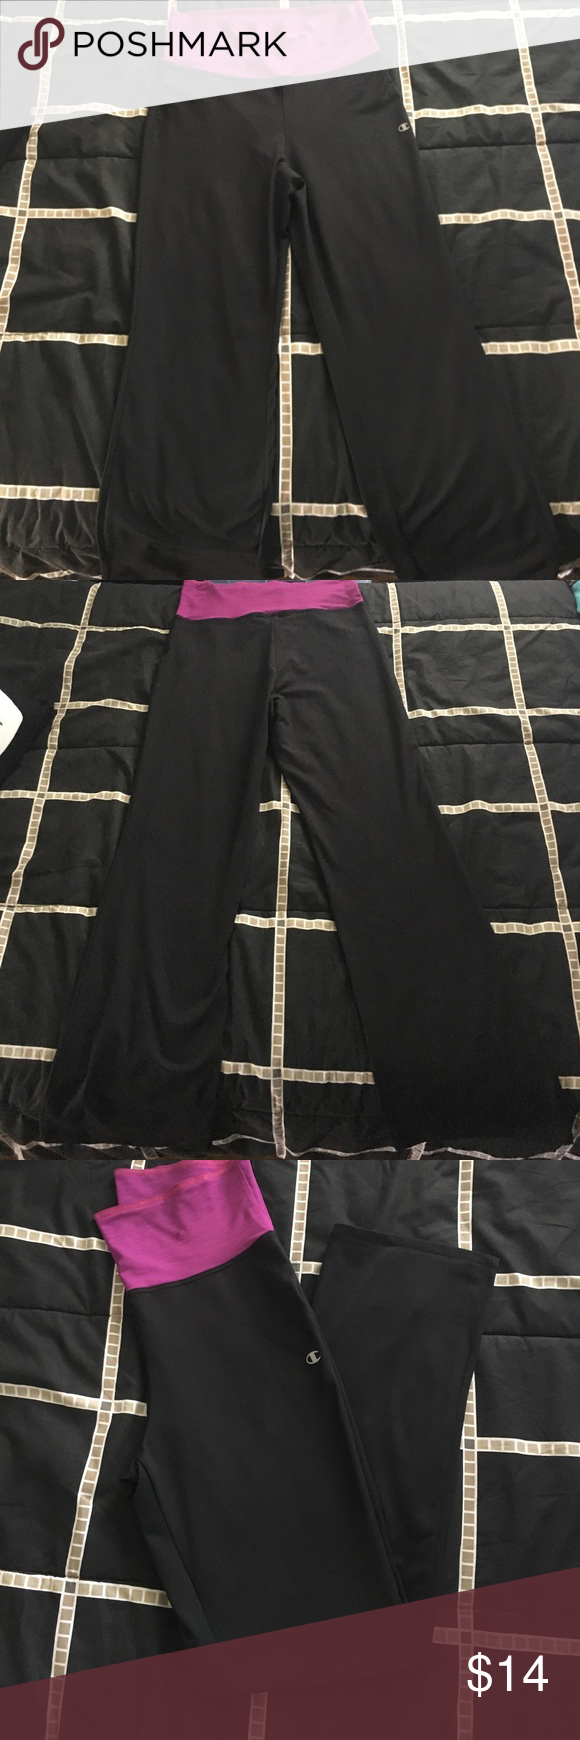 Champion Elite Semi Fit Pants with smoothtec Champion Elite Semi Fit Pants with smoothtec. Never worn although small stain on waist. Super comfort waist. Size large but short length of 37 1/2 inches from black to black. Champion Pants Leggings